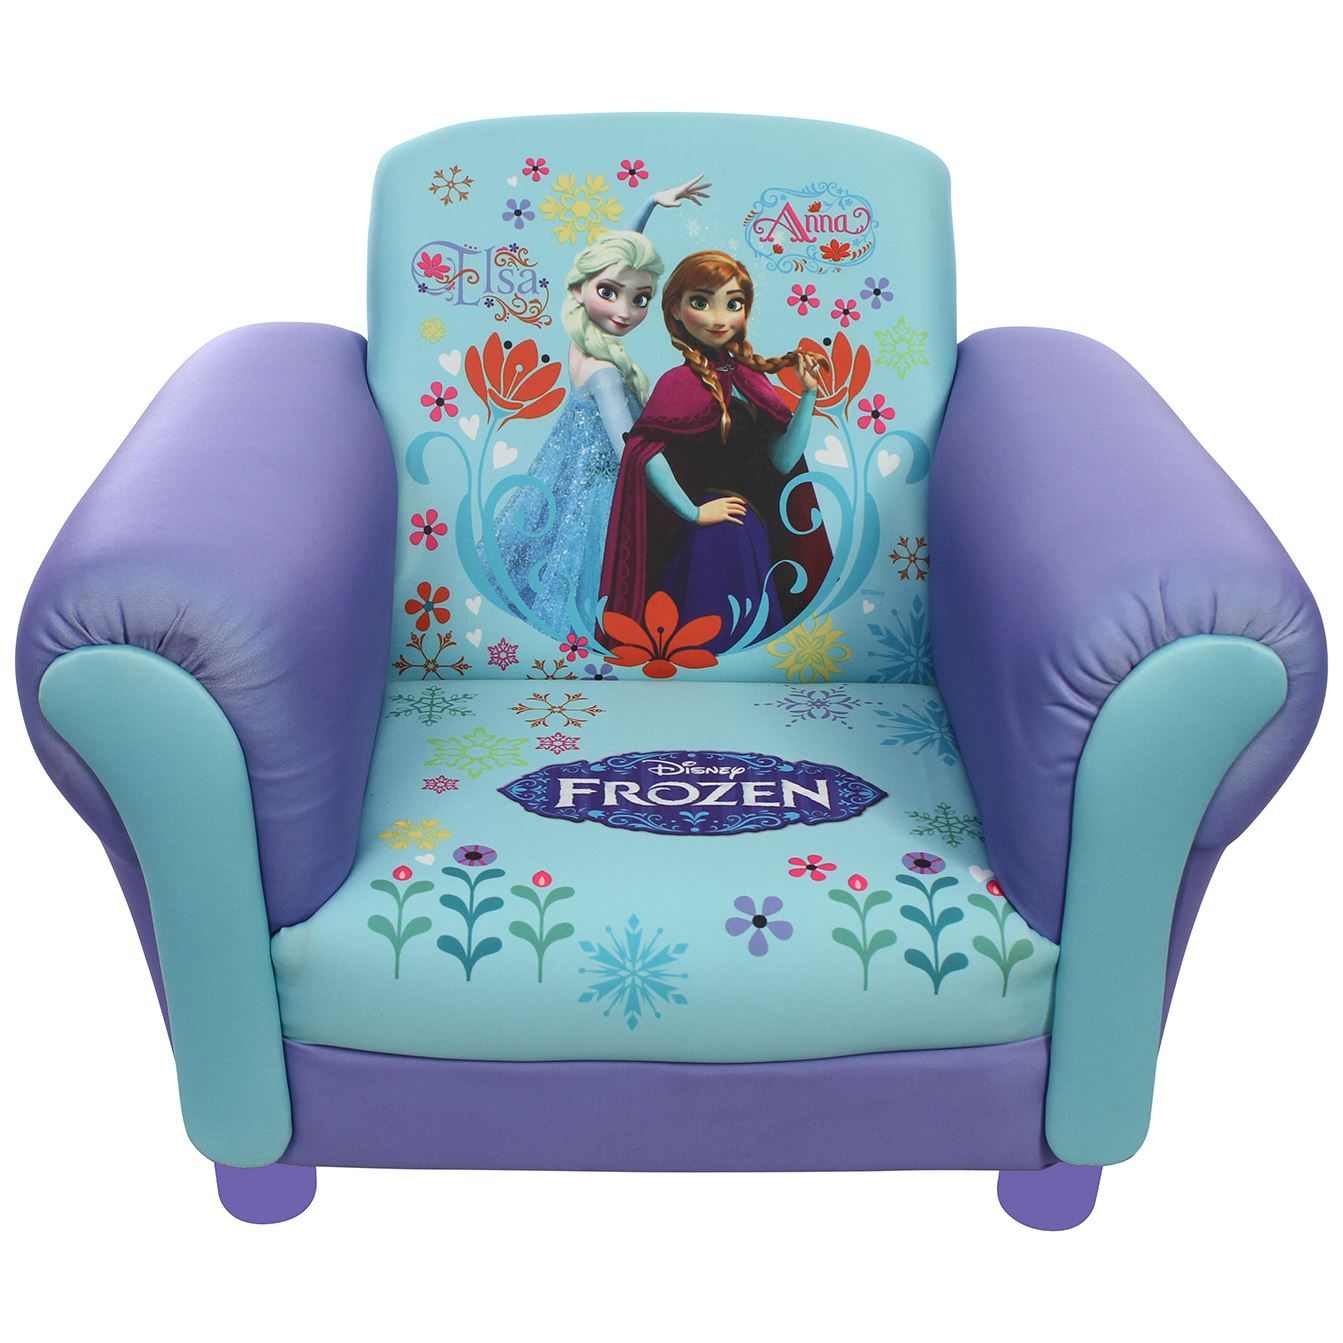 Princess Chairs For Toddlers Children 39s Princess Frozen Elsa And Anna Upholstered Chair